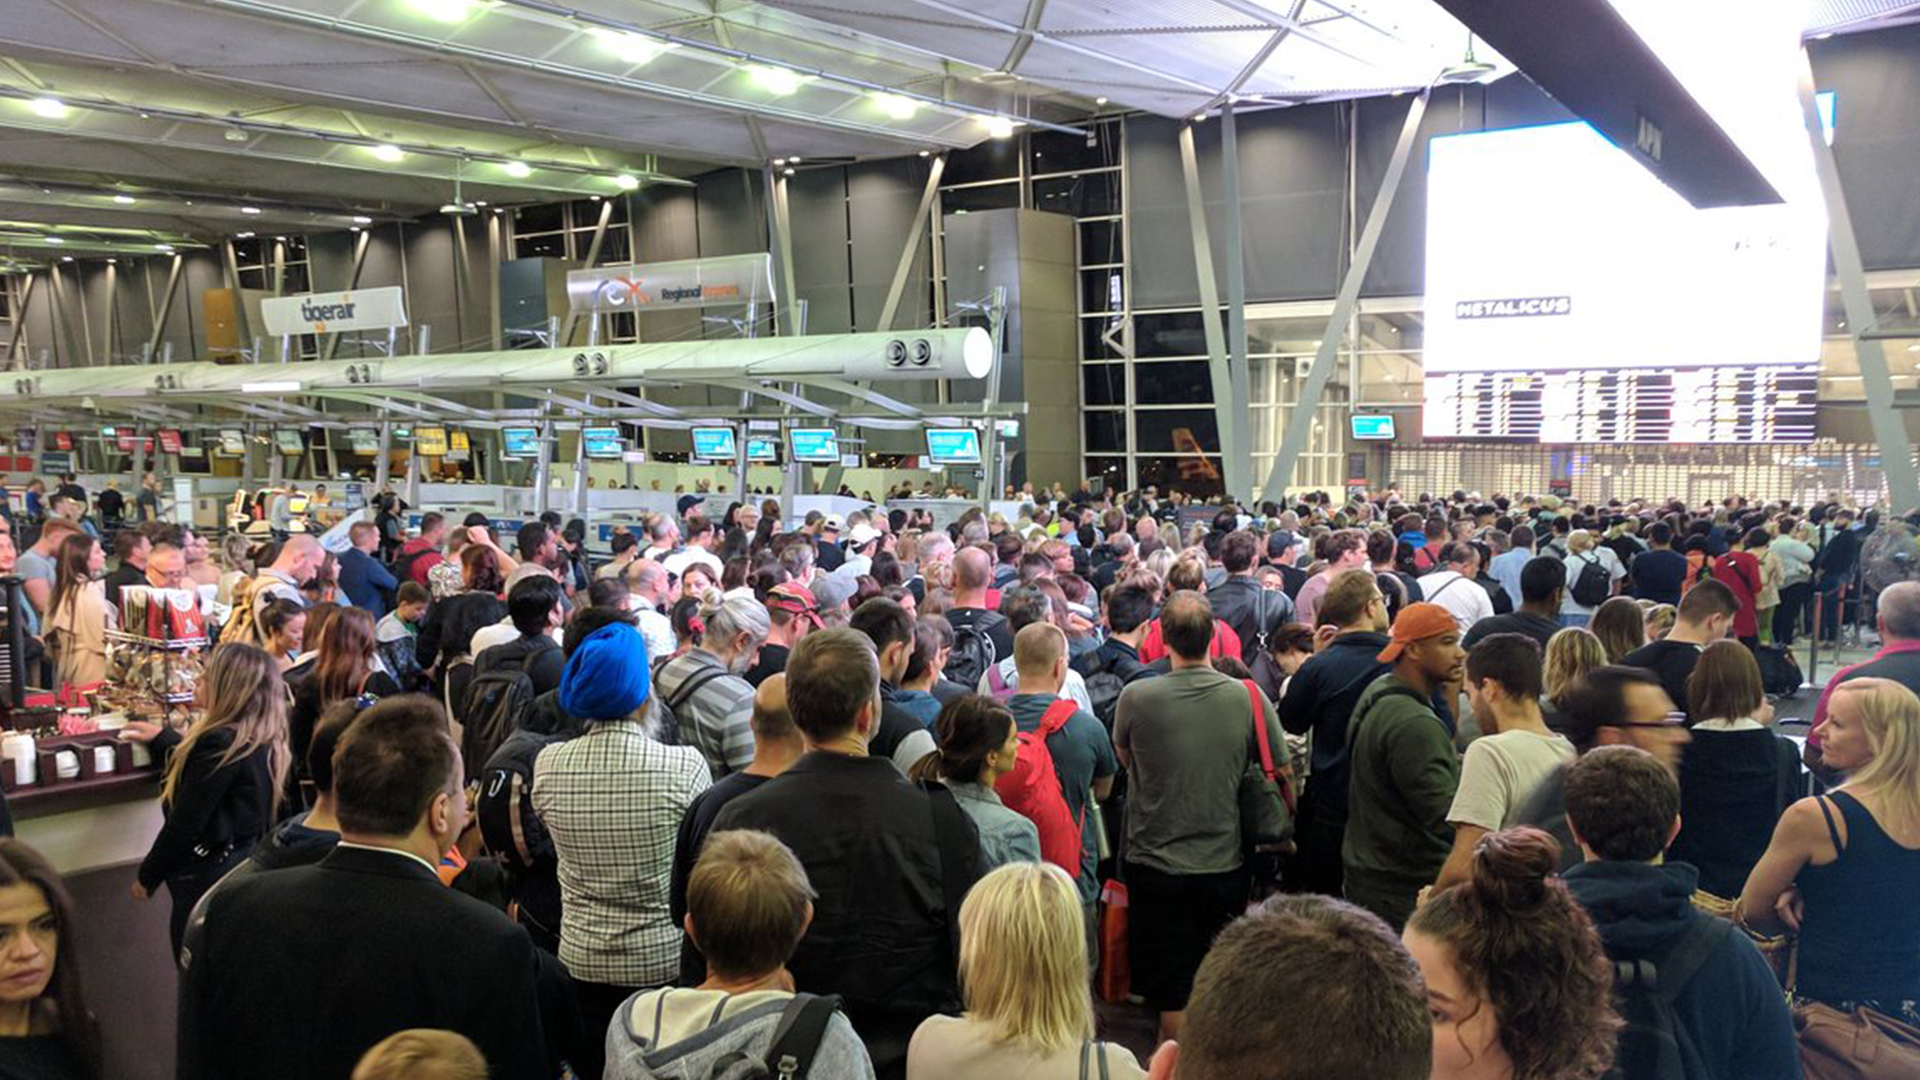 Sydney Airport delays as computer glitch causes terminal chaos